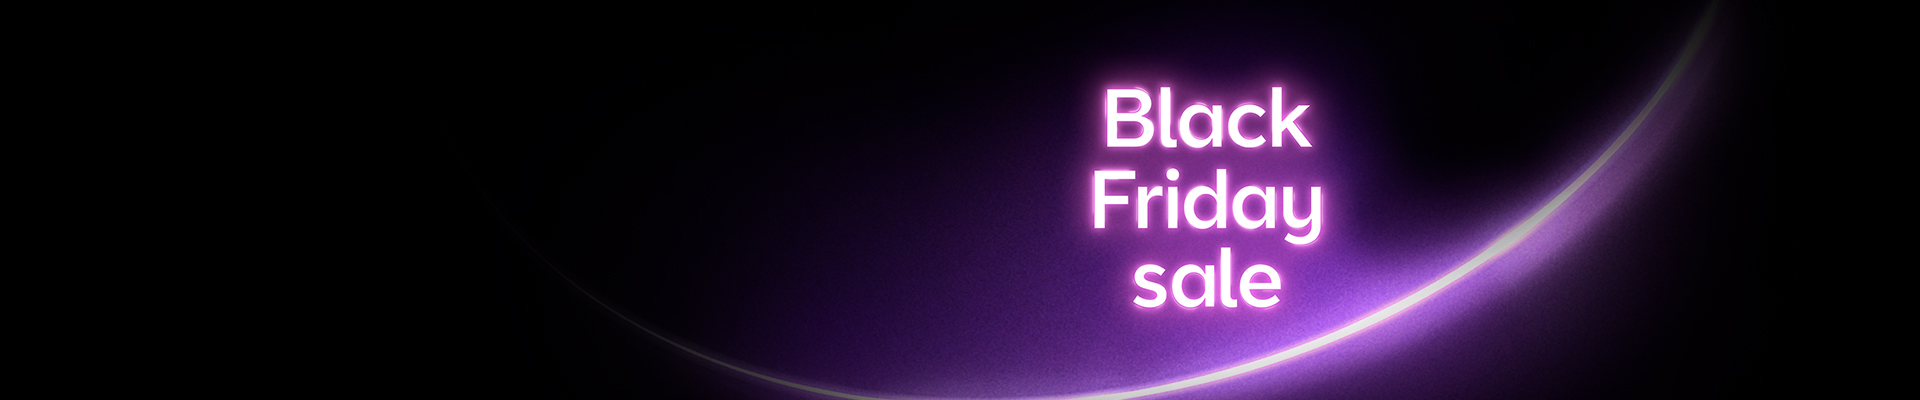 BT Sim Black Friday Sale